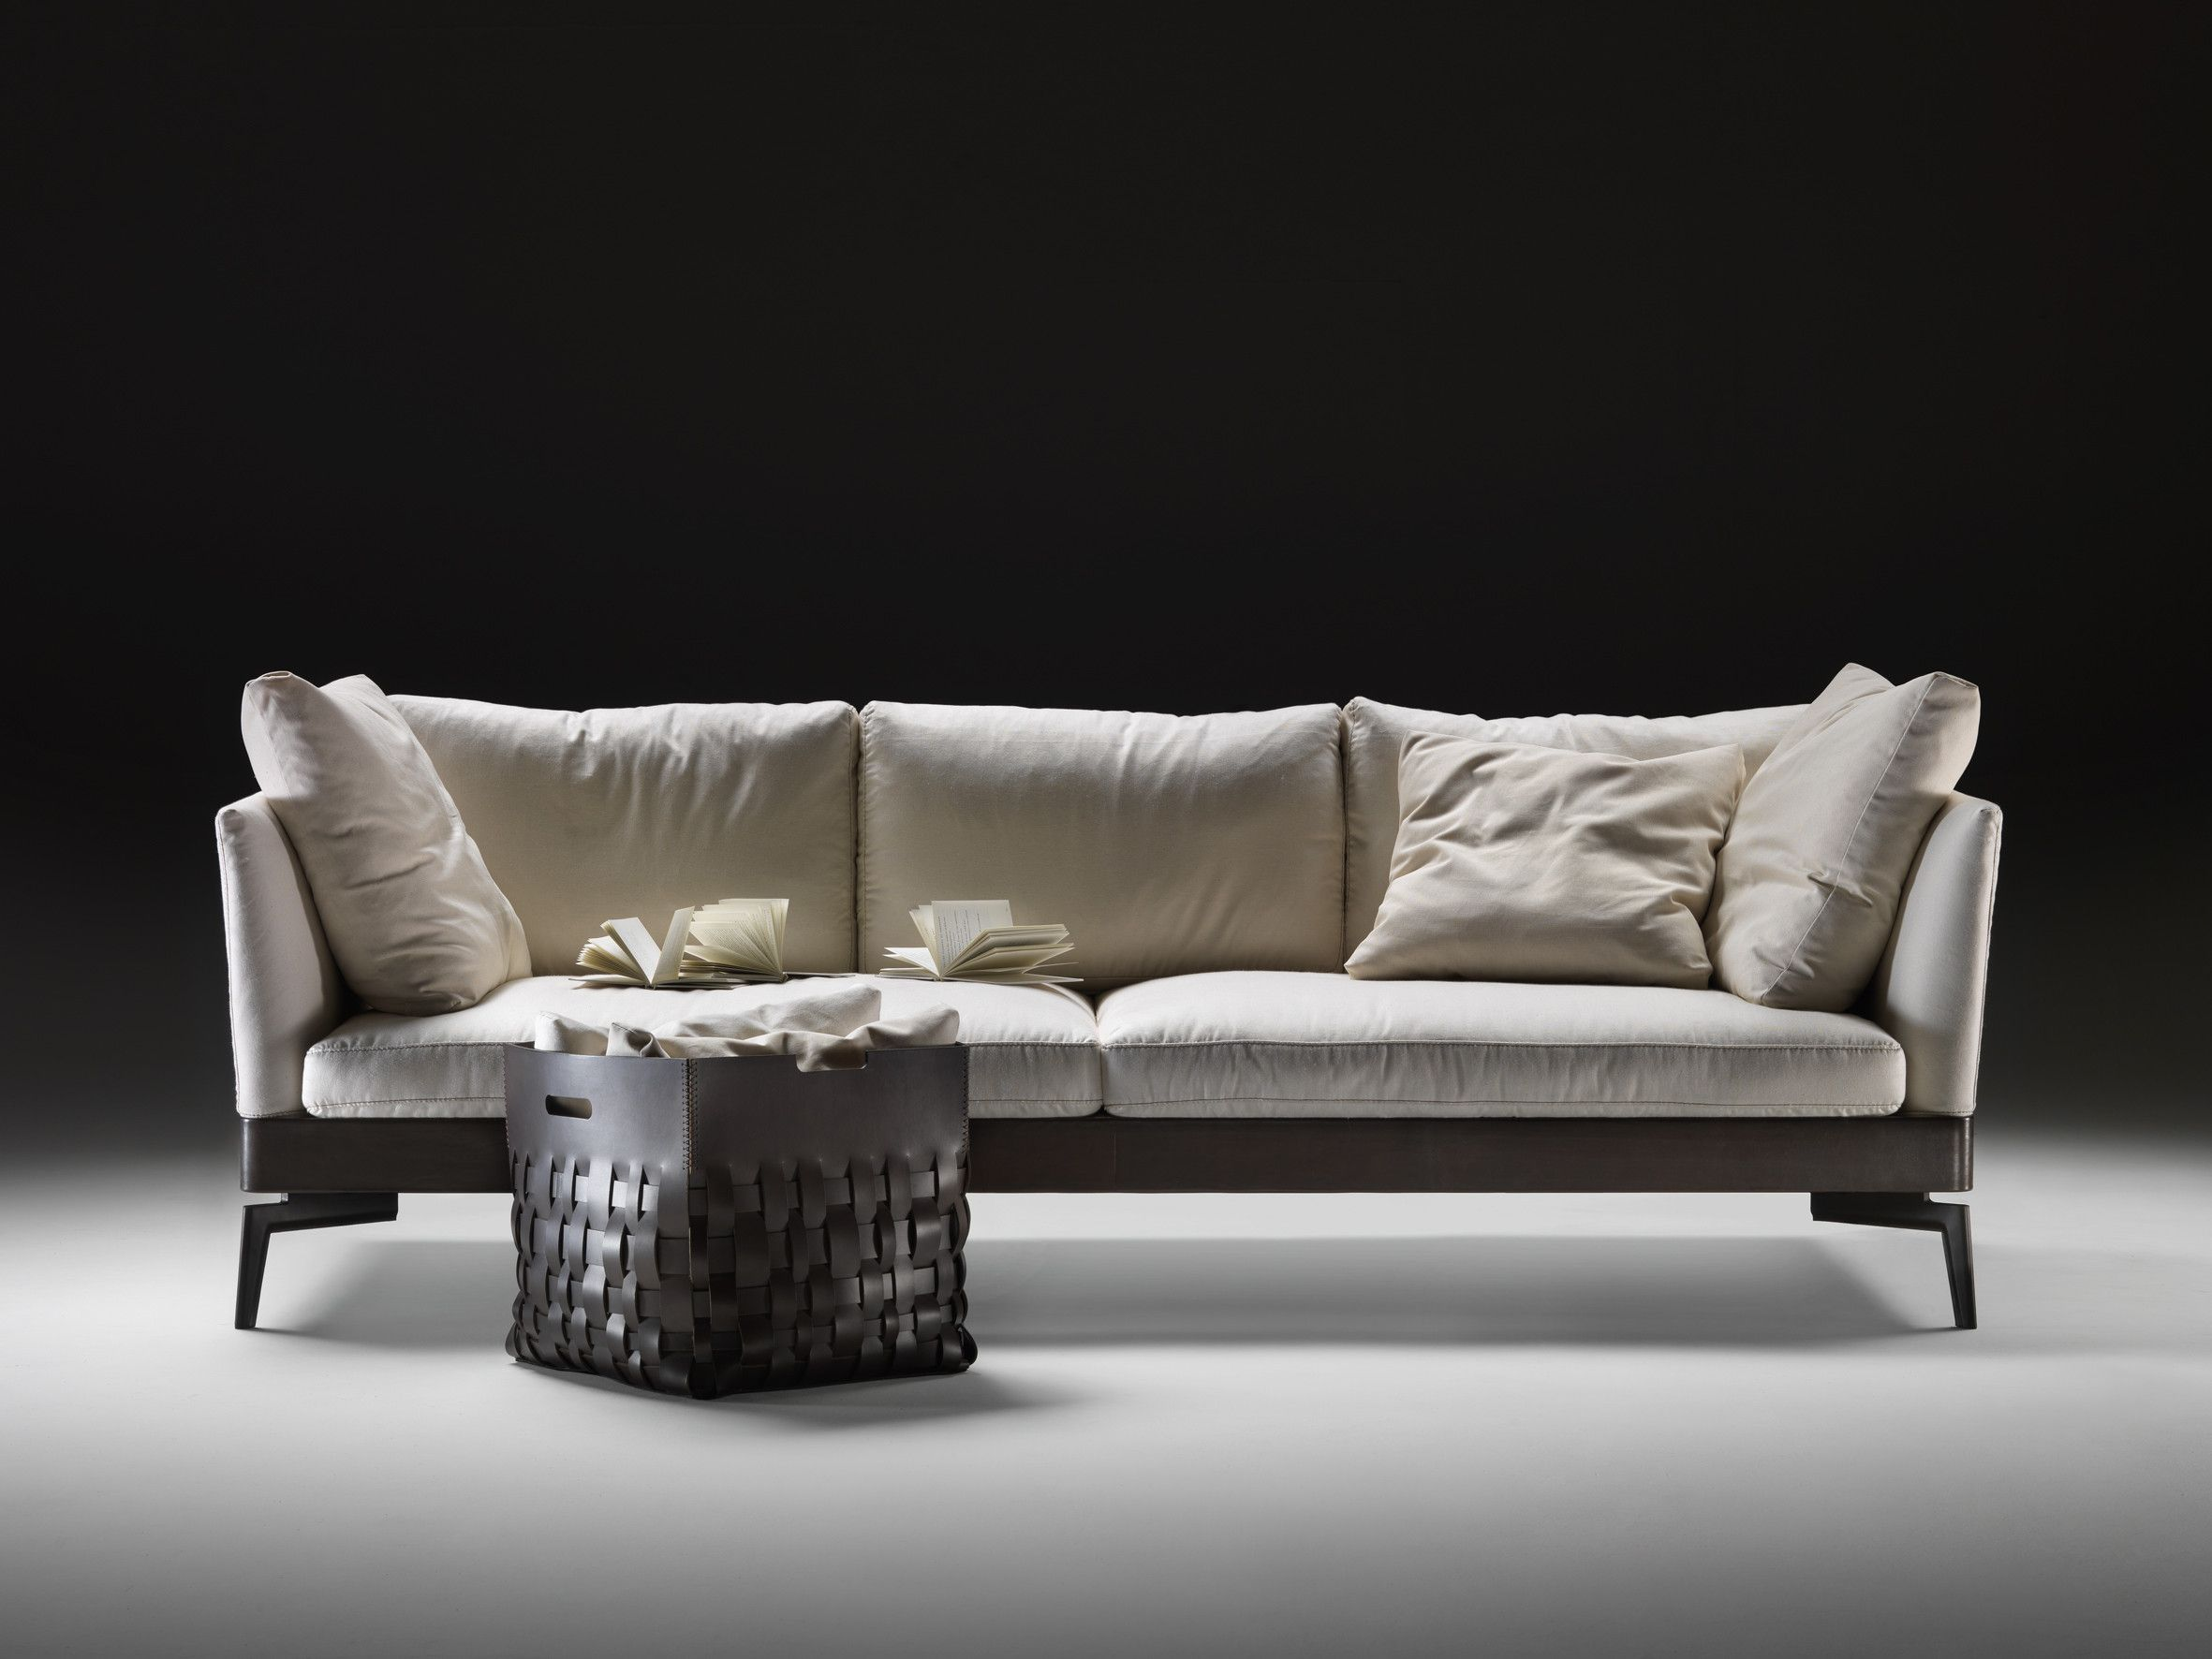 Sofa Via Feel Good Sofa By Flexform Via Designresource Co Sofas